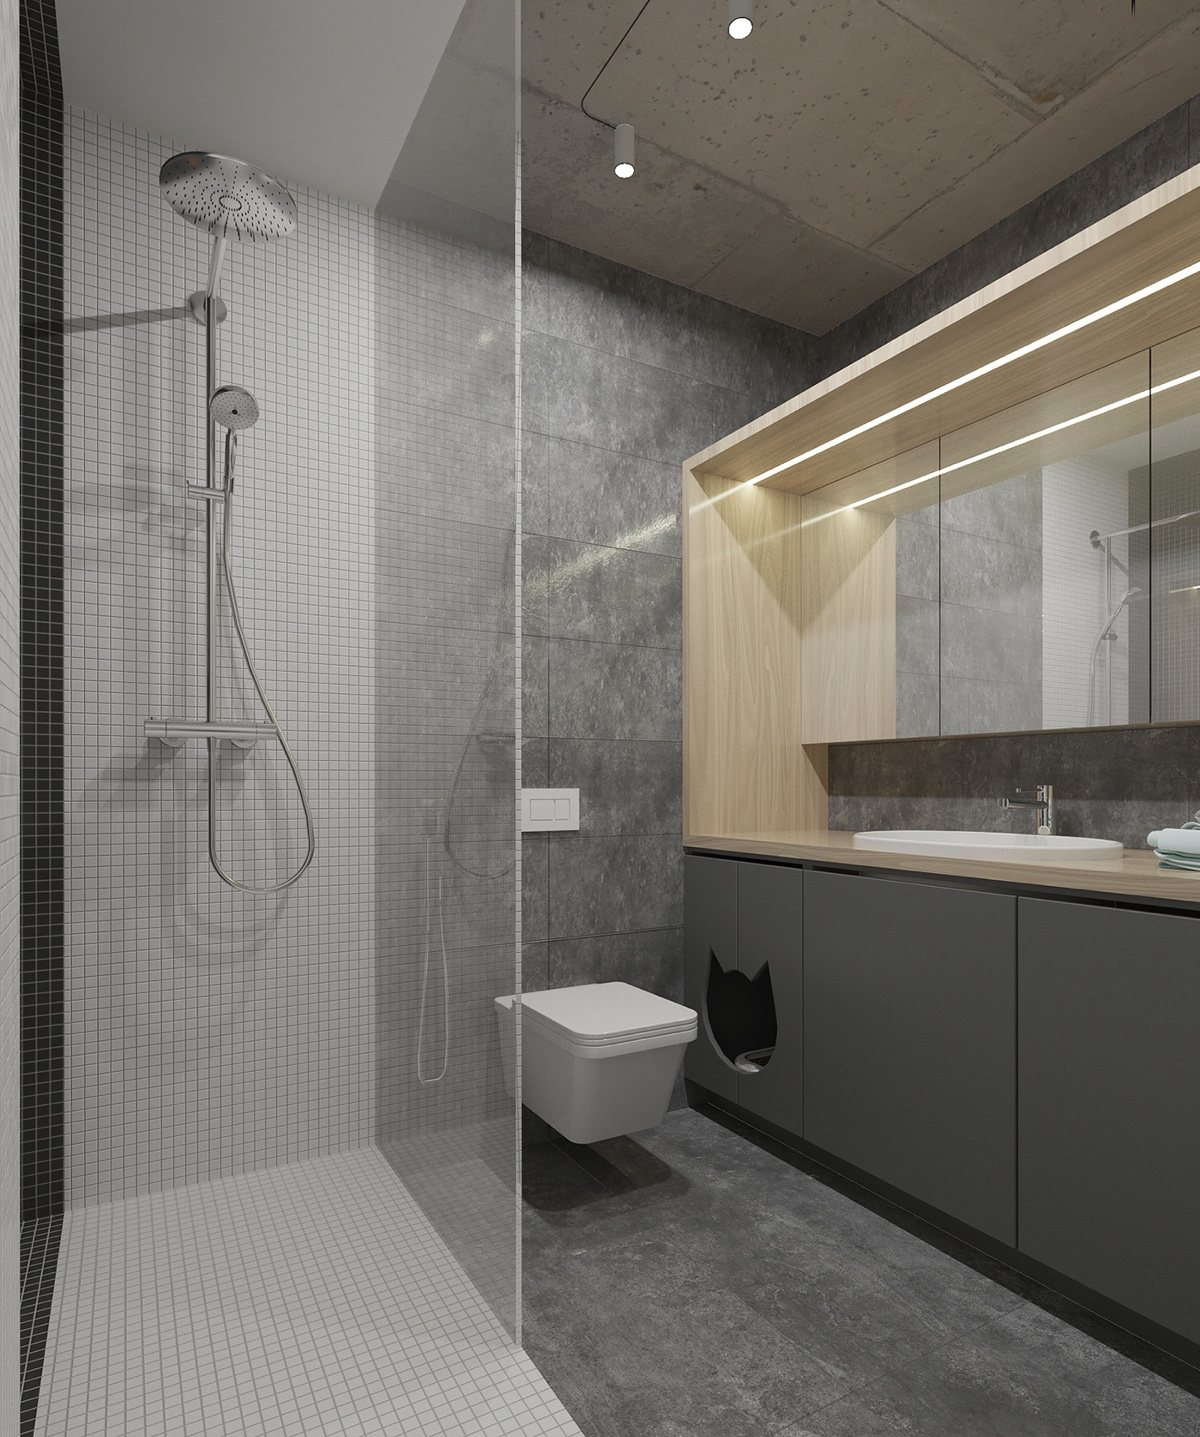 How To Create A Greyscale Bathroom: 4 Bright Studio Apartments With Creative Bedroom Placement